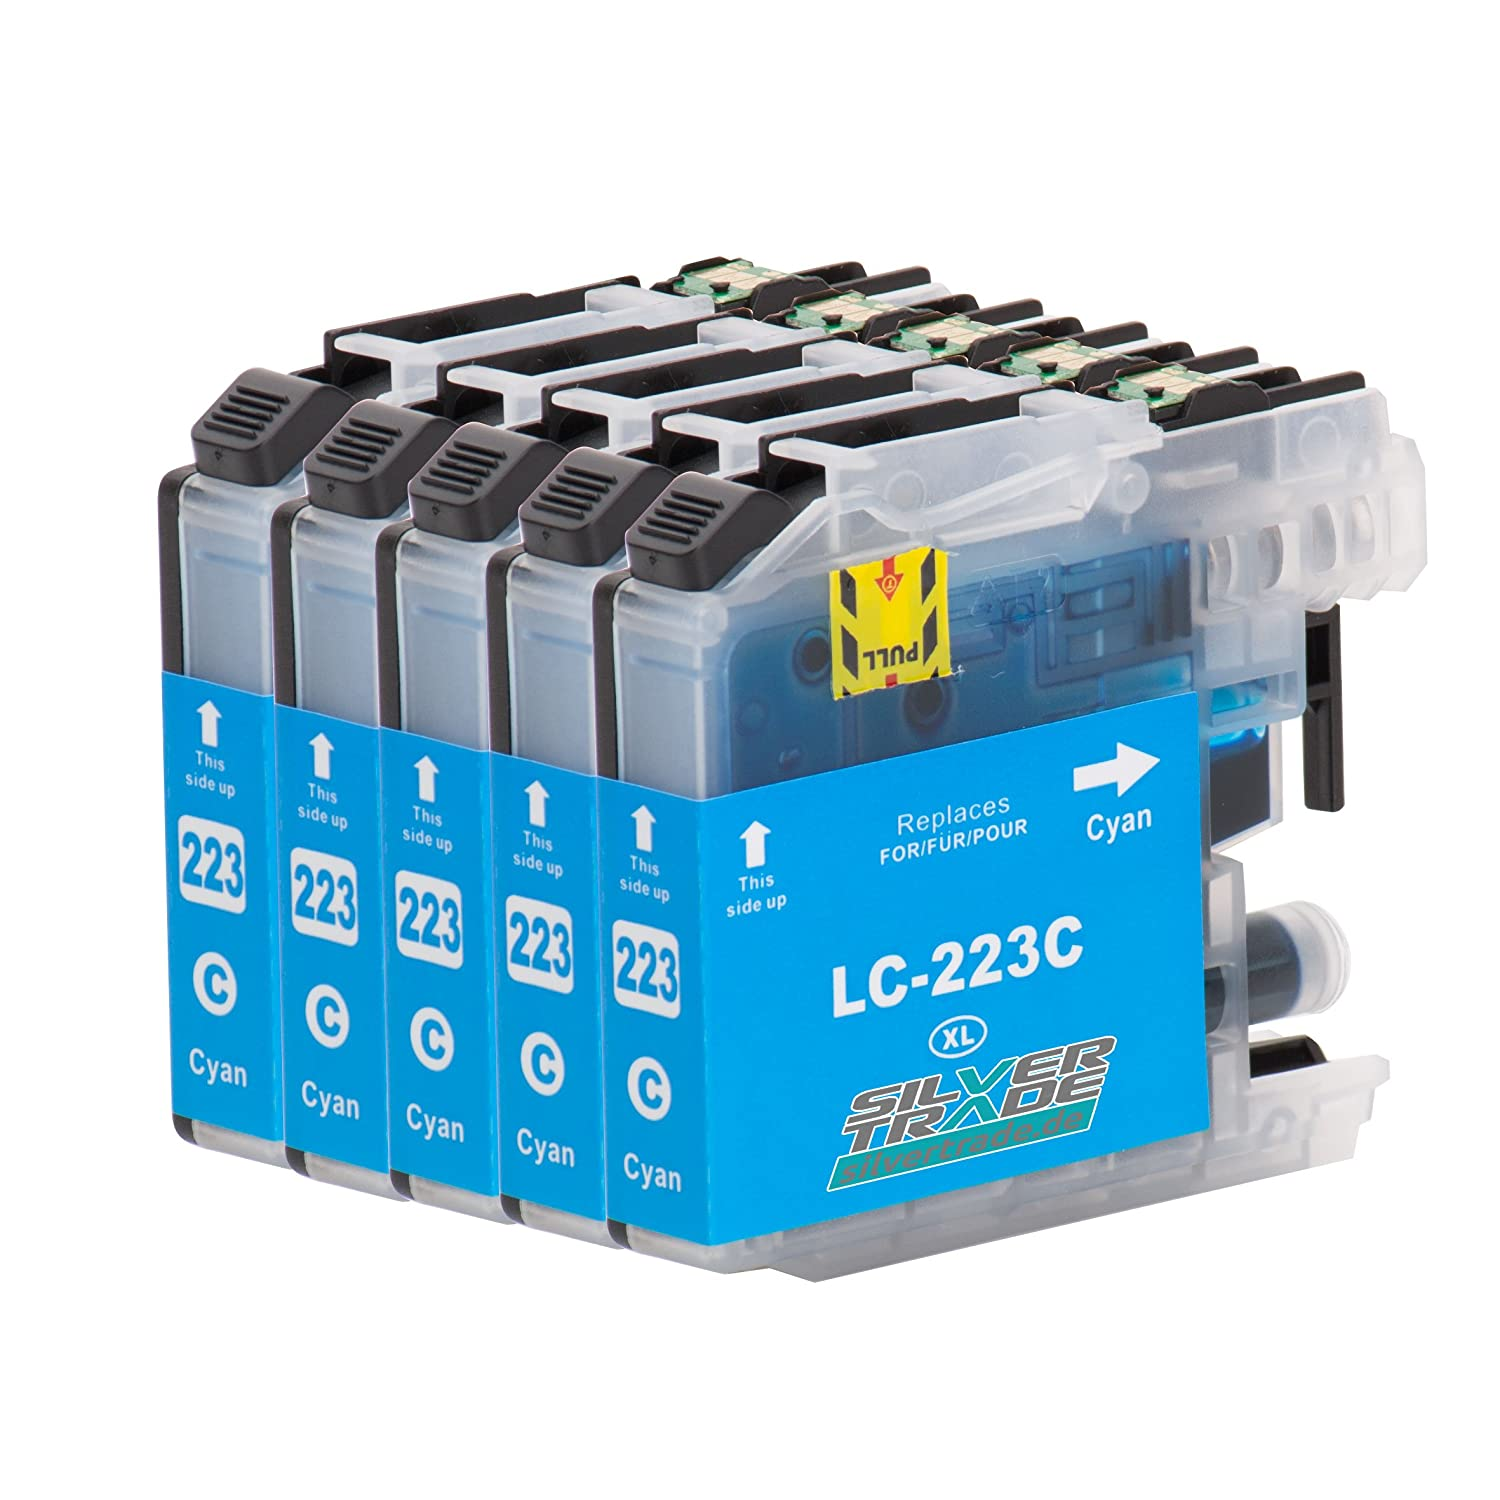 5 Cartuchos de tinta compatible para Brother LC223XL Cyan con chip para Brother DCP-J4120DW / MFC-J4420DW / MFC-J4620DW / MFC-J4625DW / MFC-J4425DW / ...